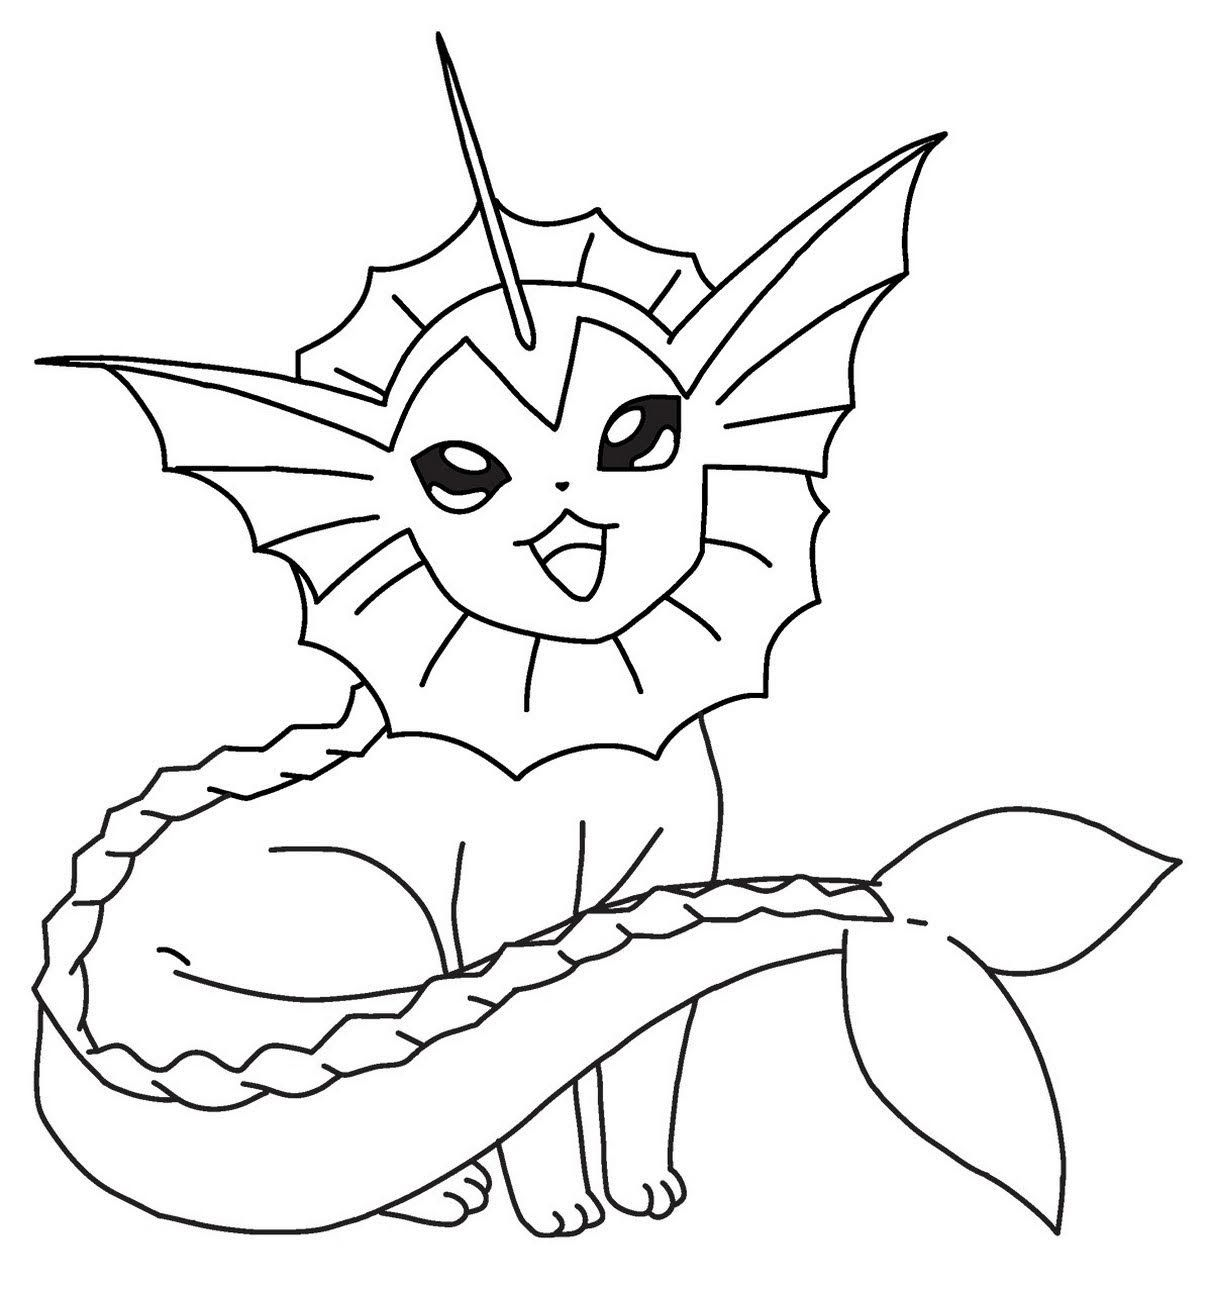 Pokemon Vaporeon Coloring Pages Eevee Evolution Pokemon Coloring Pages Pokemon Coloring Sheets Pokemon Coloring